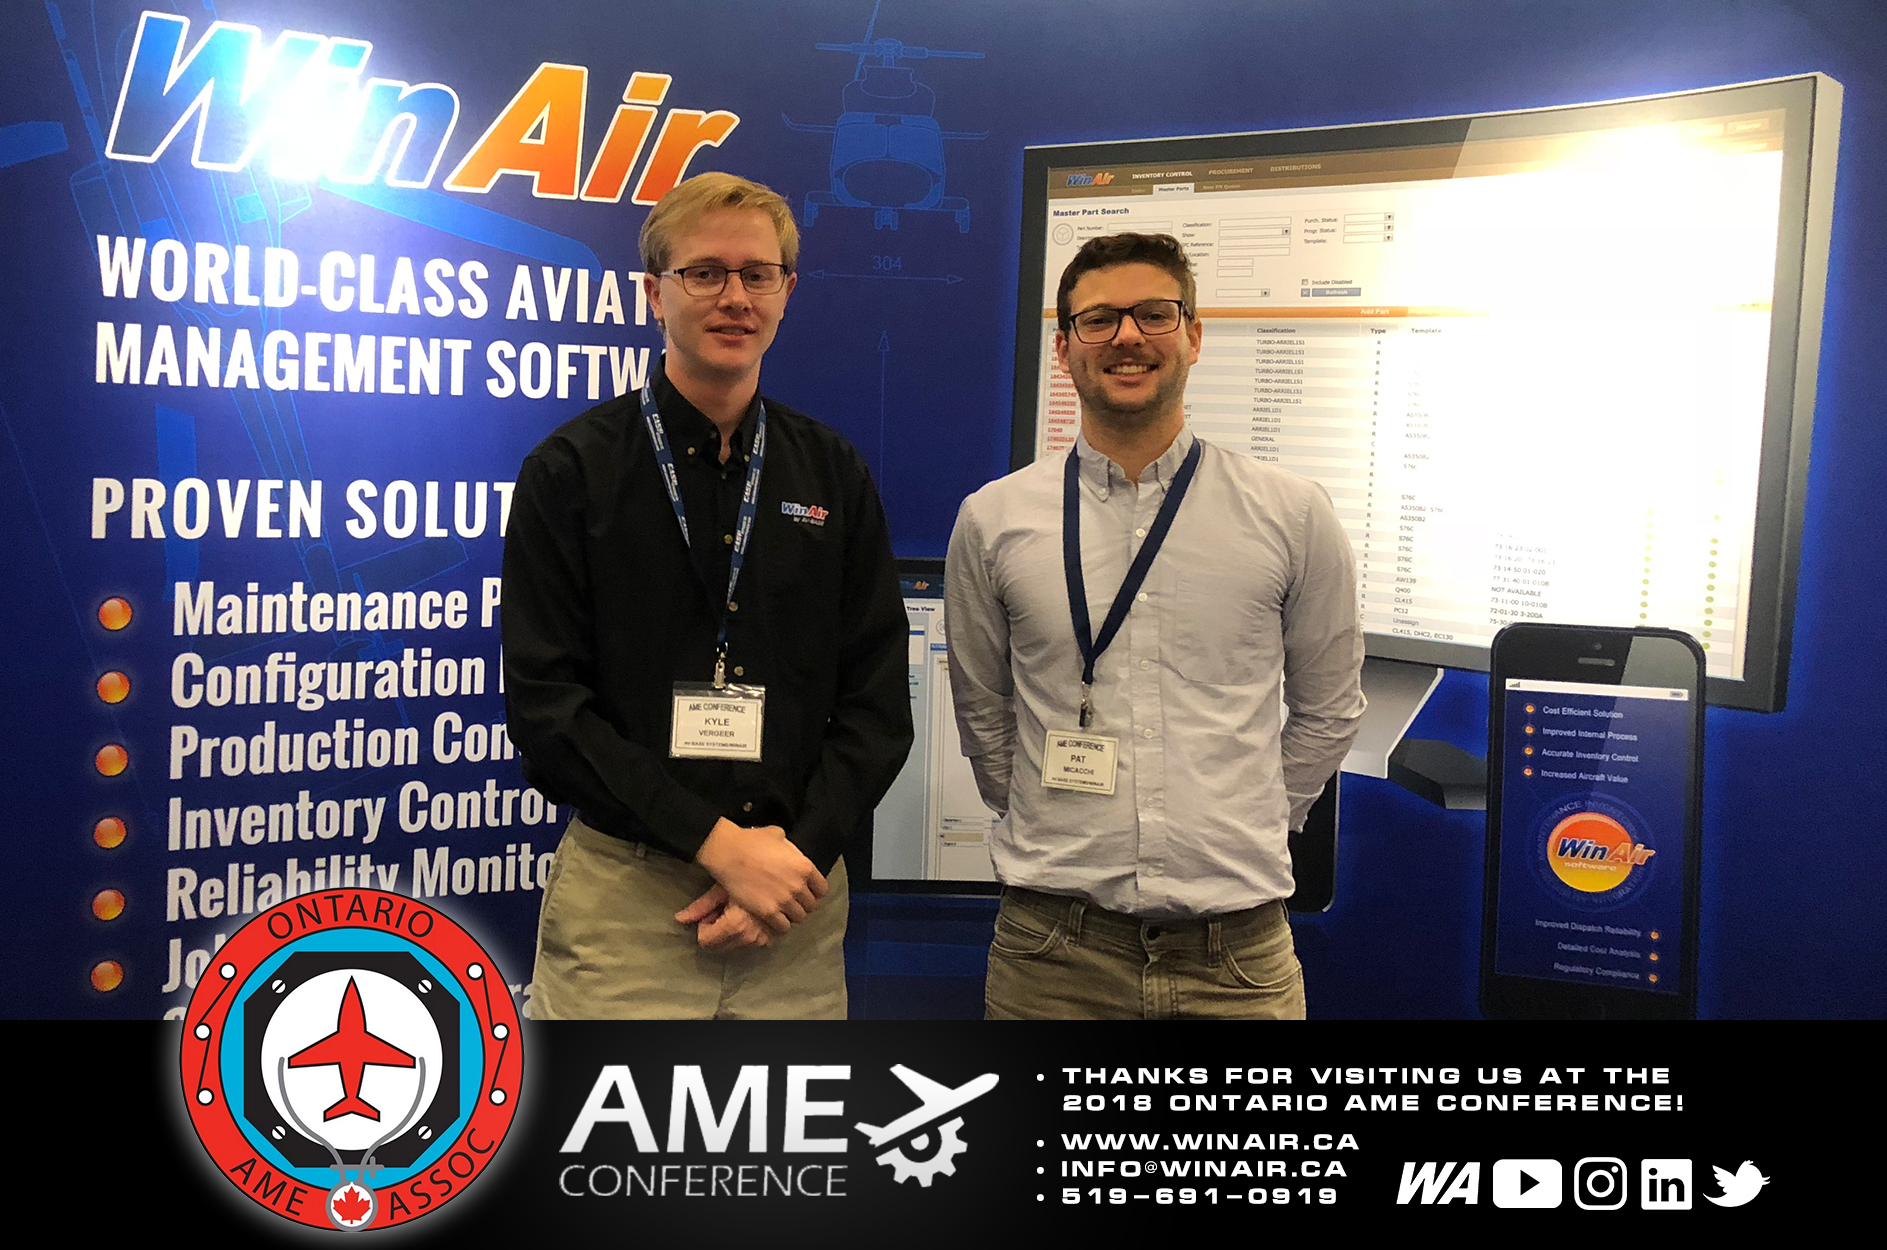 WinAir - Aviation Management Software - Ontario AME Conference - Thanks for Visiting Us - booth image